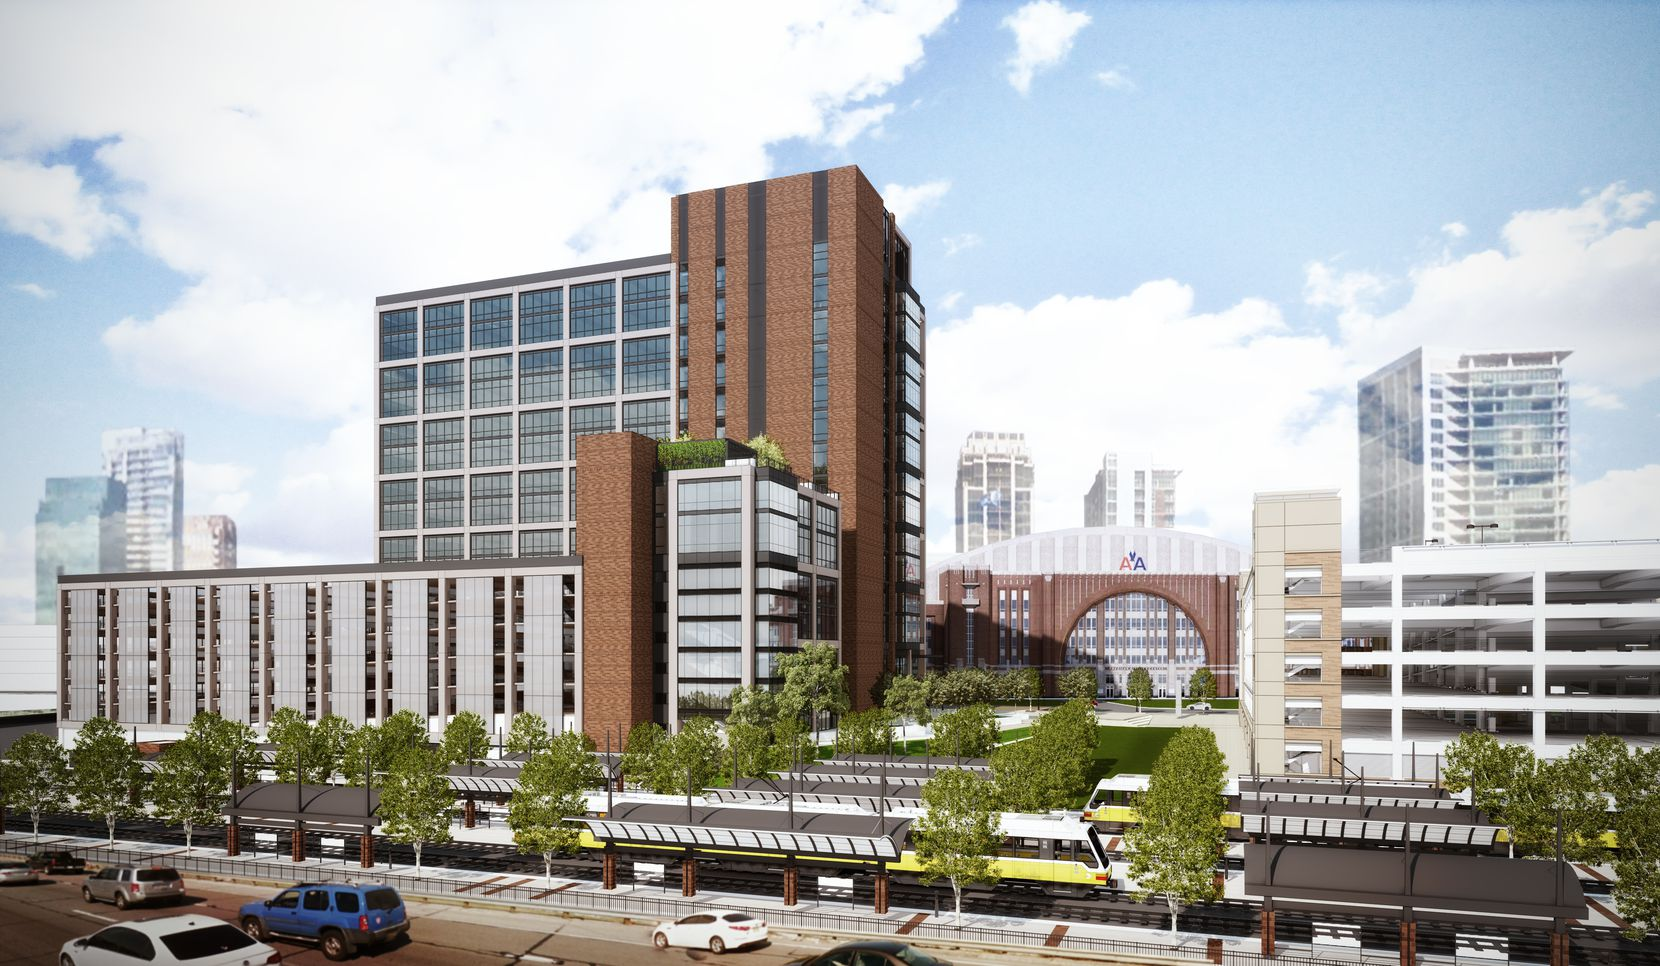 The new Victory Commons office project is next door to DART's Victory Park commuter rail station.